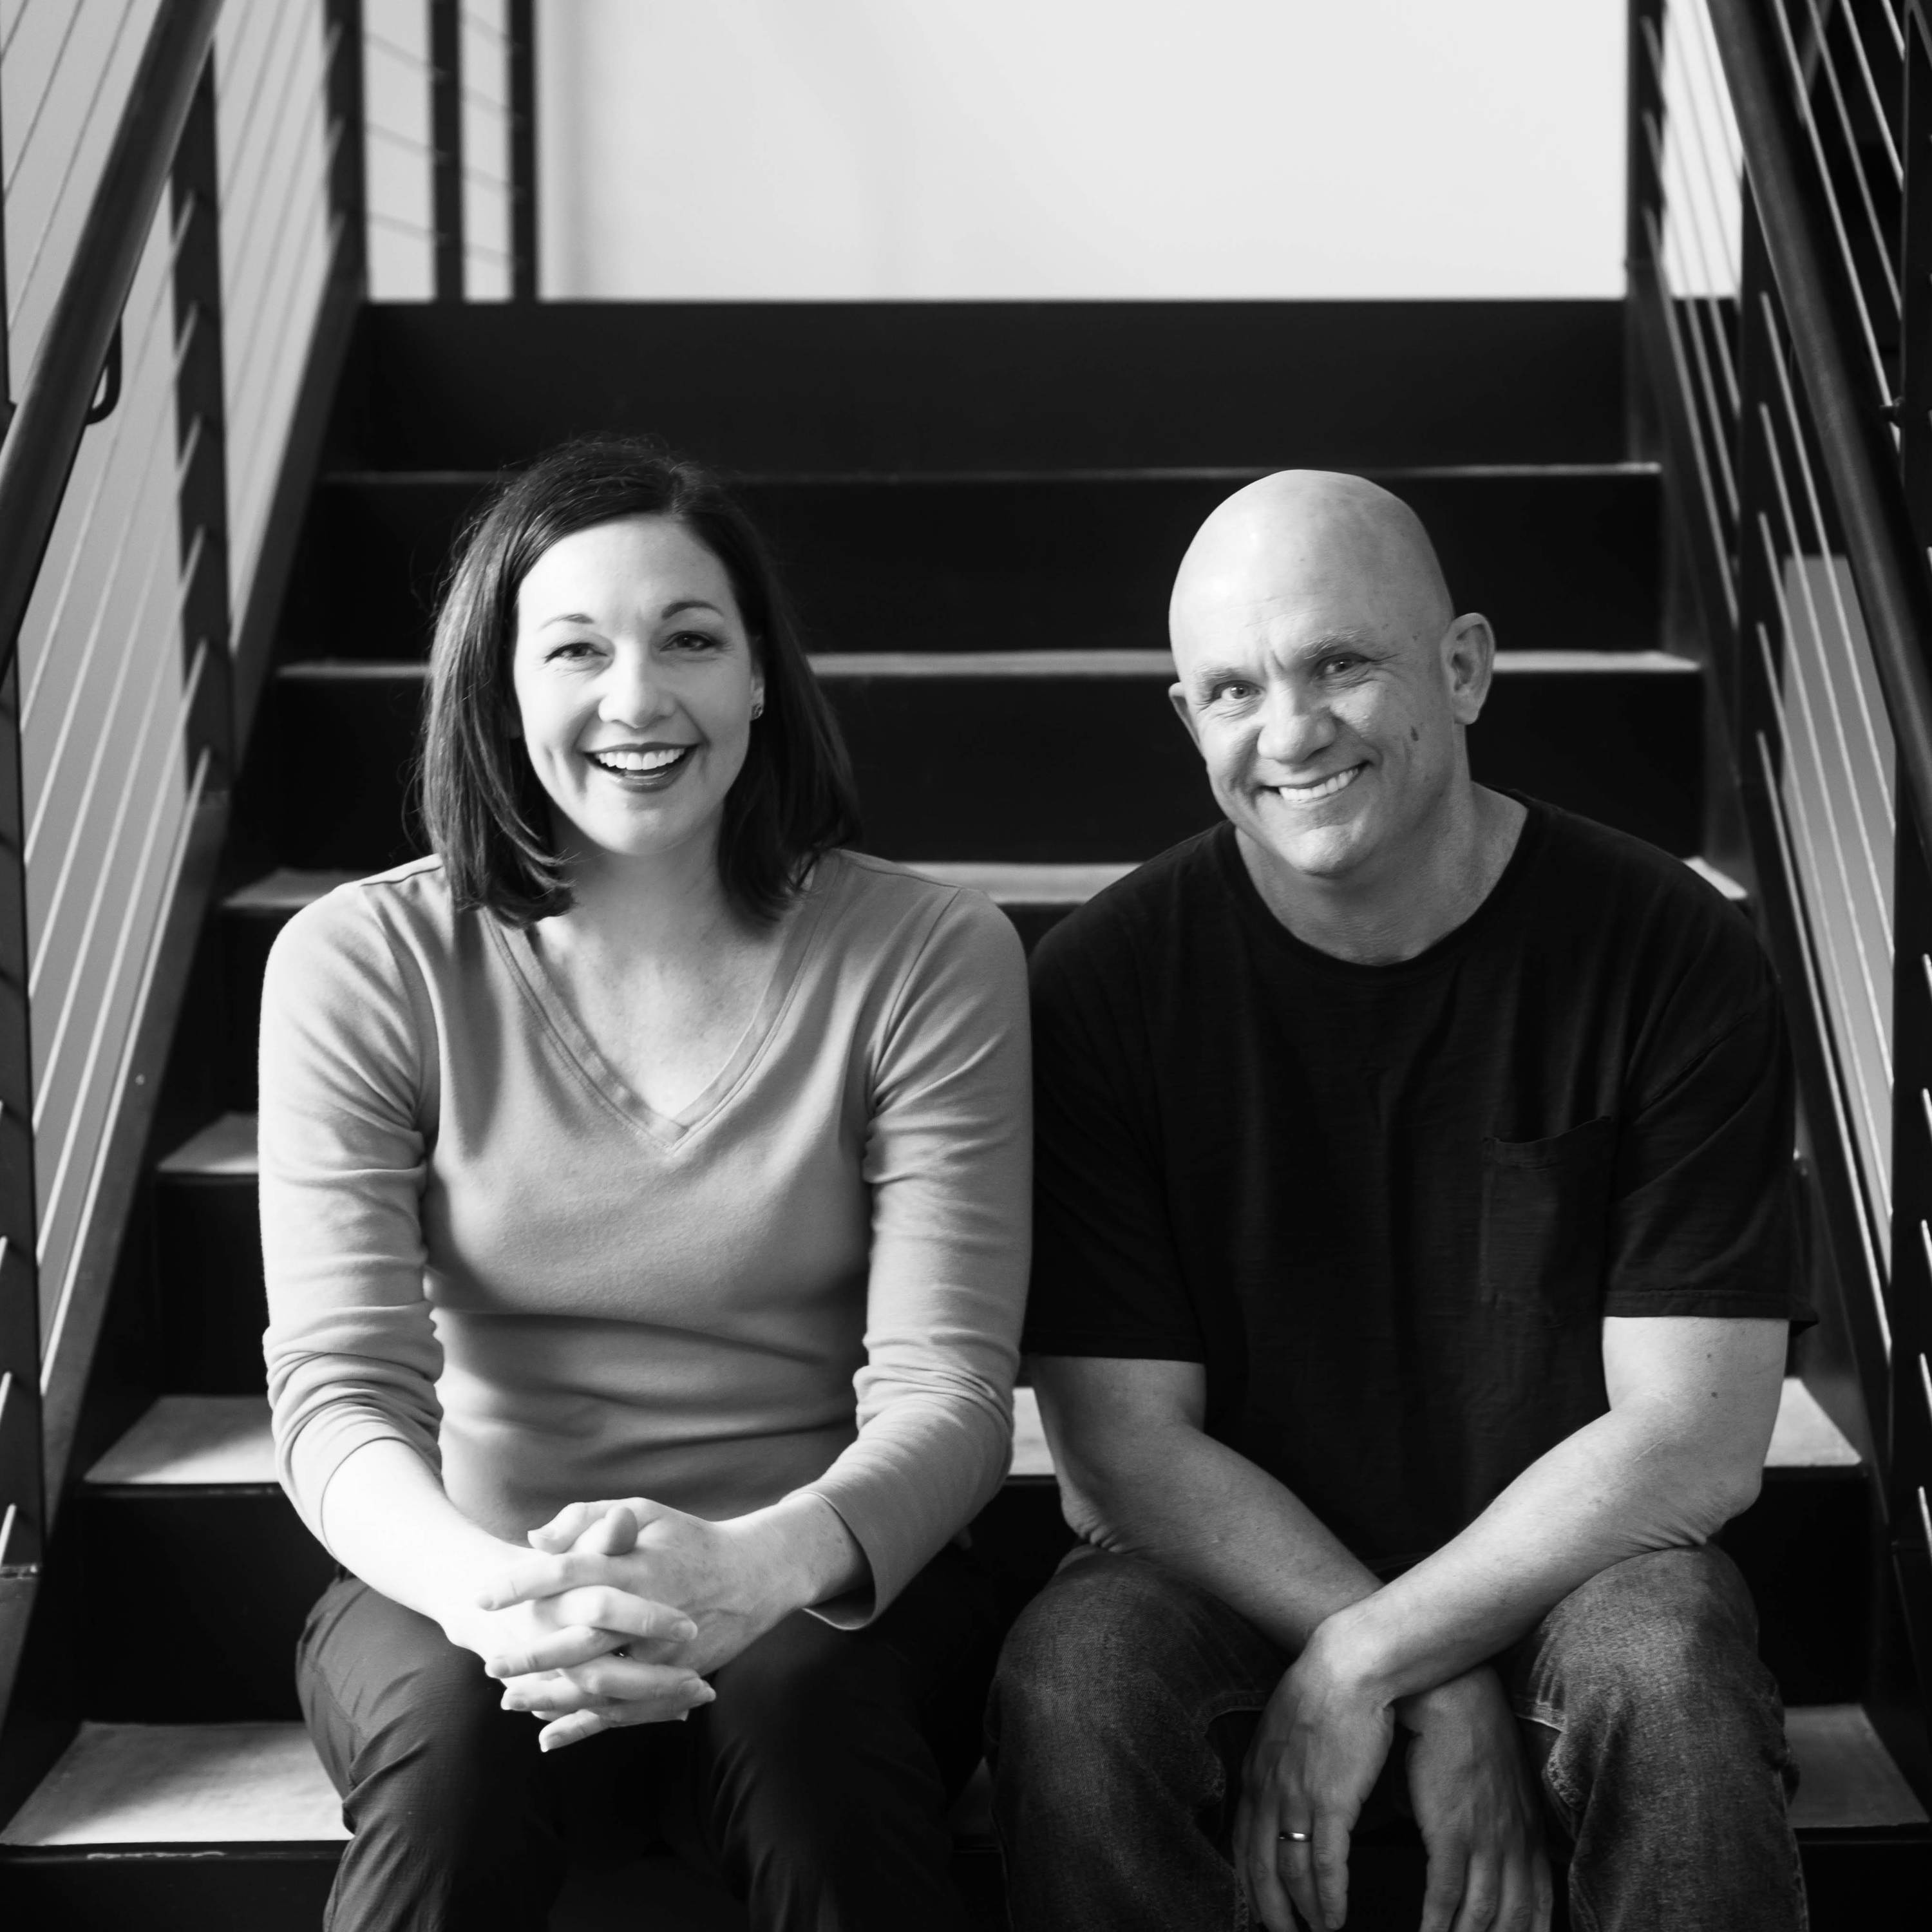 Eosera founders and EARWAX MD creators smiling on stairs.